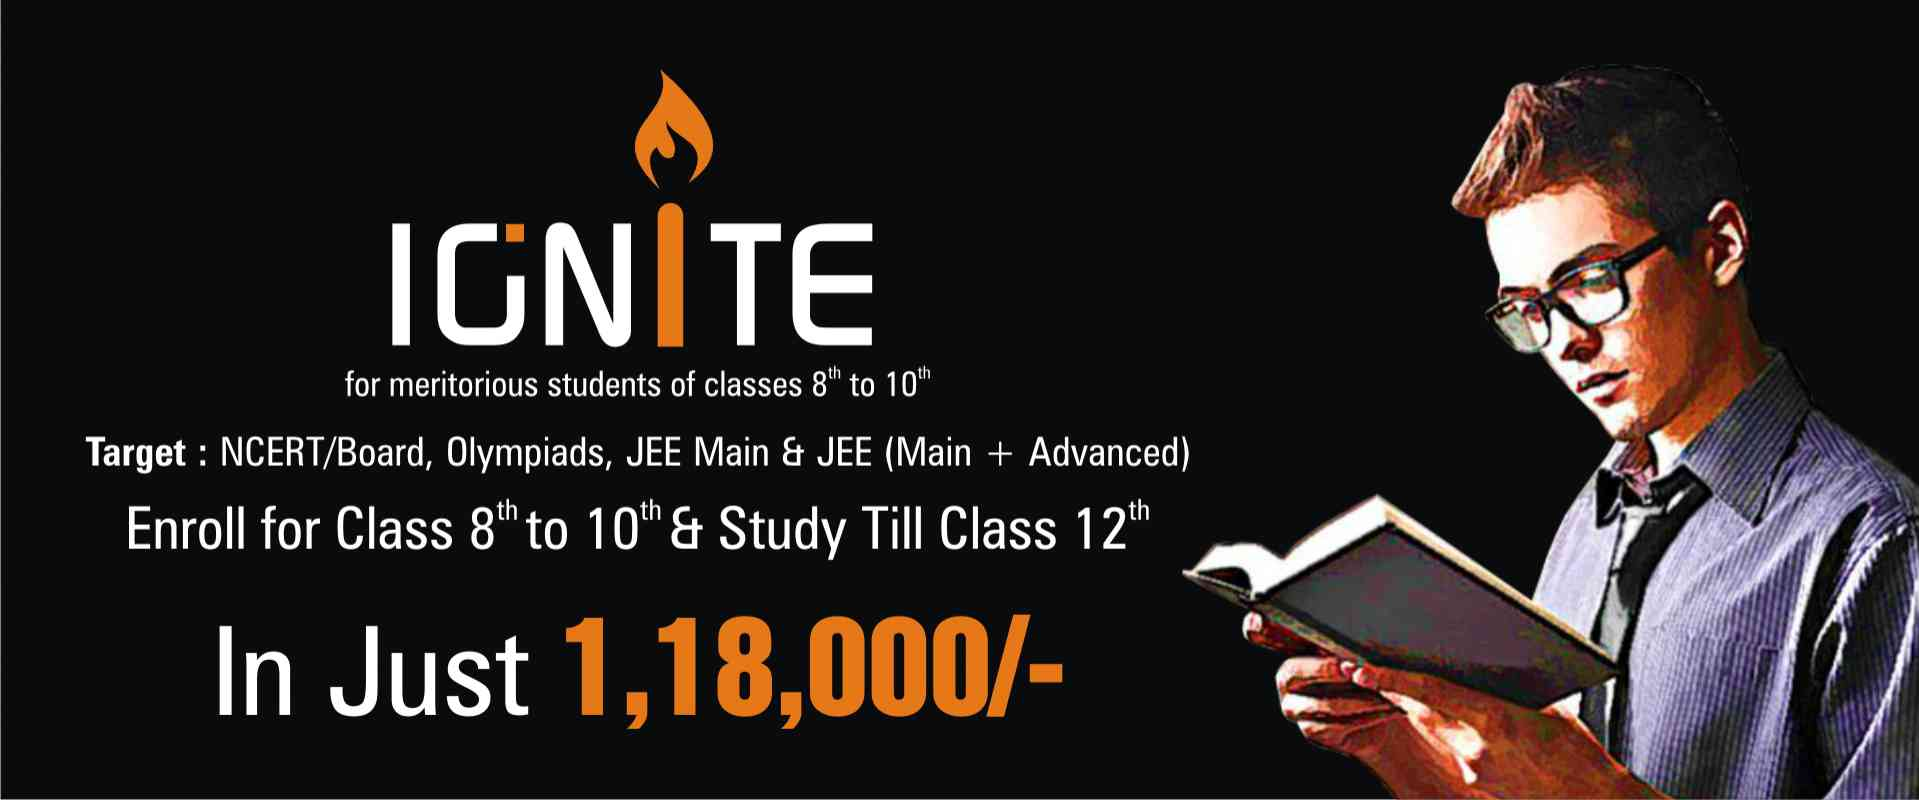 IGNITE PROGRAM FOR MERITORIOUS STUDENT 8th to 10th